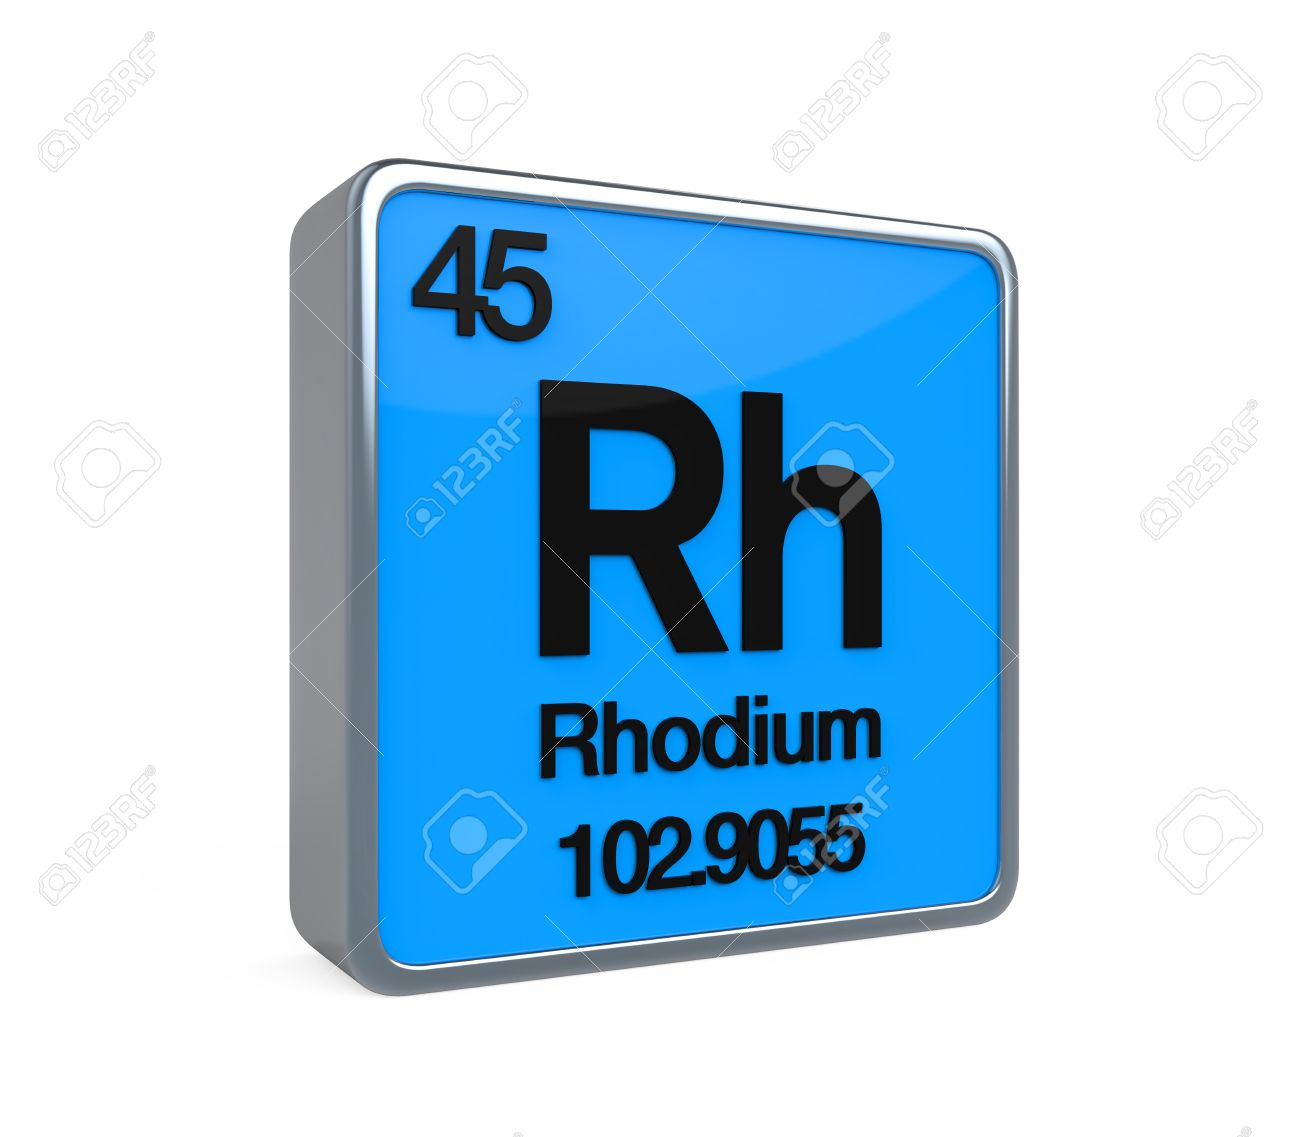 112 rhodium stock vector illustration and royalty free rhodium clipart rhodium element periodic table gamestrikefo Image collections